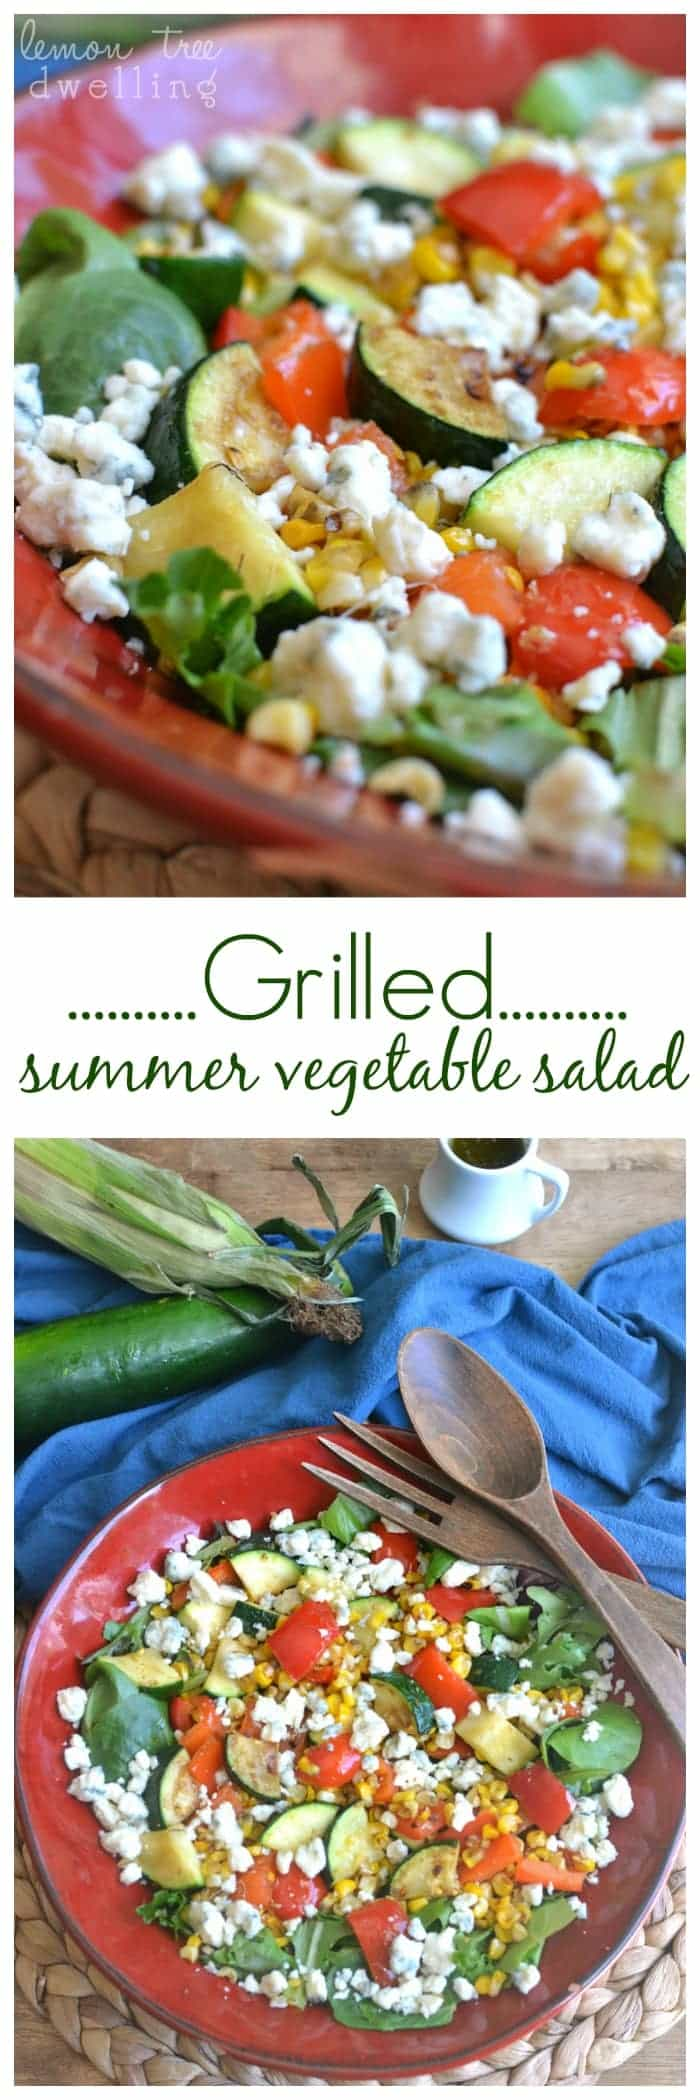 Grilled summer vegetables tossed with mixed greens, blue cheese, and a 4-ingredient pesto vinaigrette. A perfectly simple and delicious summer salad!